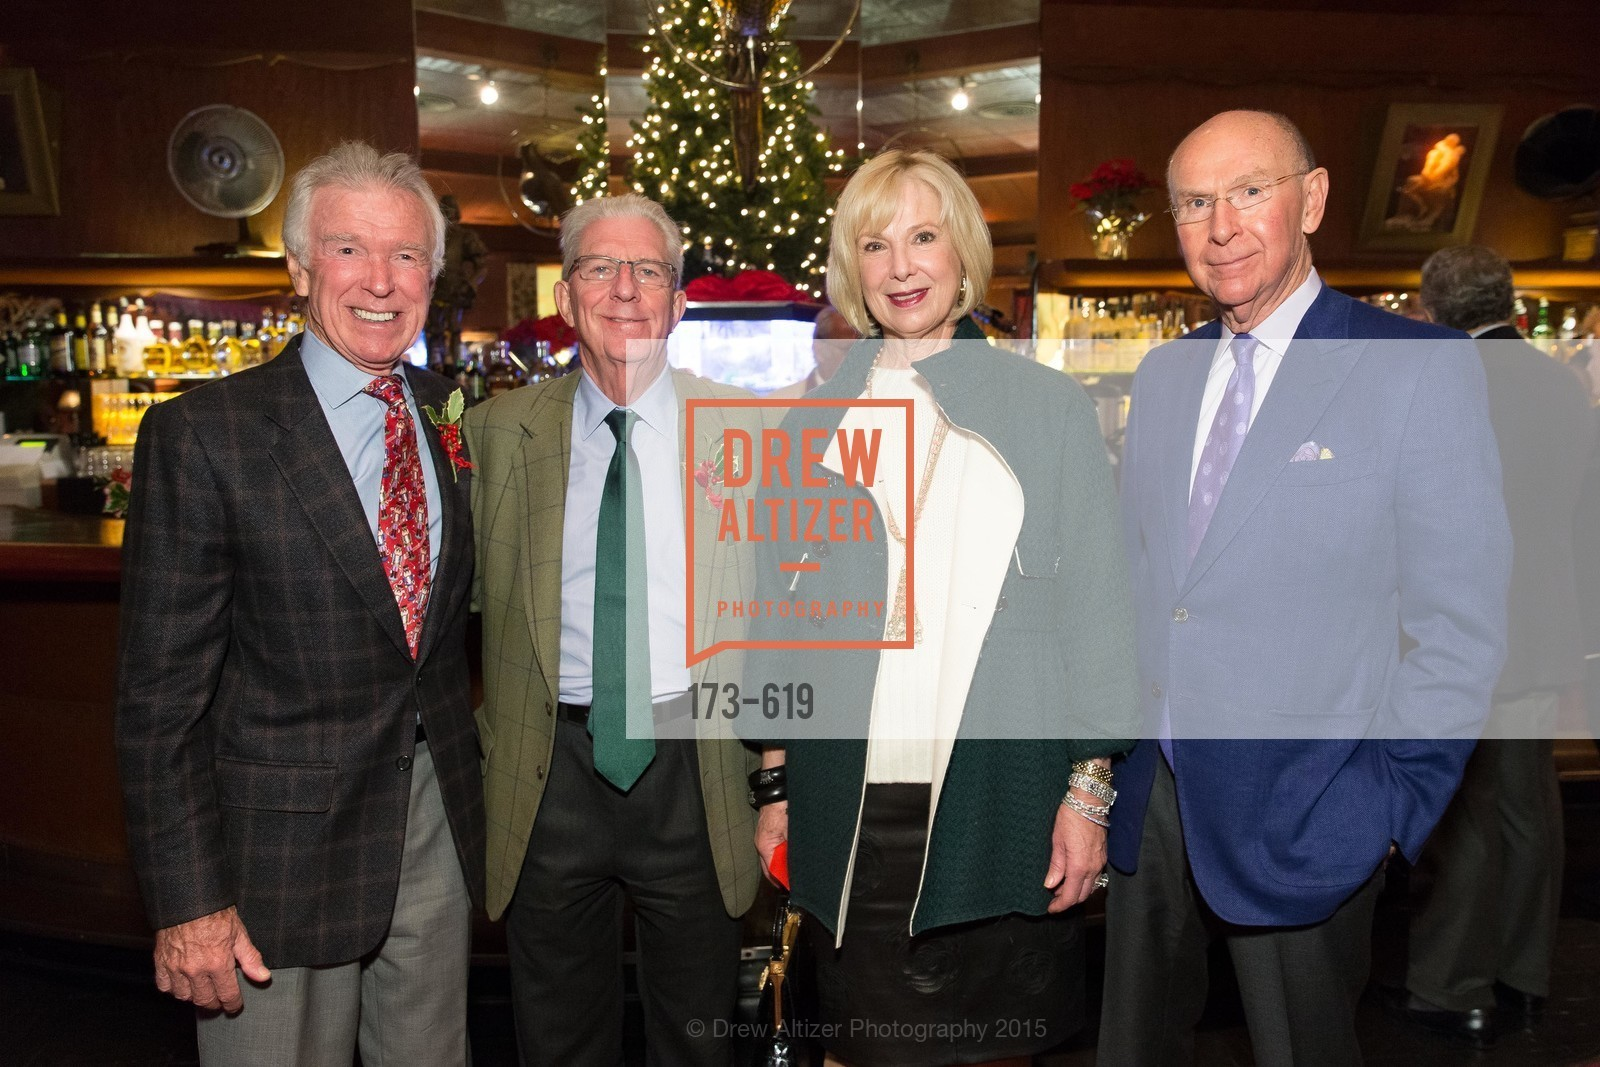 Dan Kasper, Rich Guggenhime, Kaye Heafey, Richard Heafey, Shansby/Matarasso Holiday Lunch, Bimbo's 365 Club. 1025 Columbus Ave, December 4th, 2015,Drew Altizer, Drew Altizer Photography, full-service event agency, private events, San Francisco photographer, photographer California